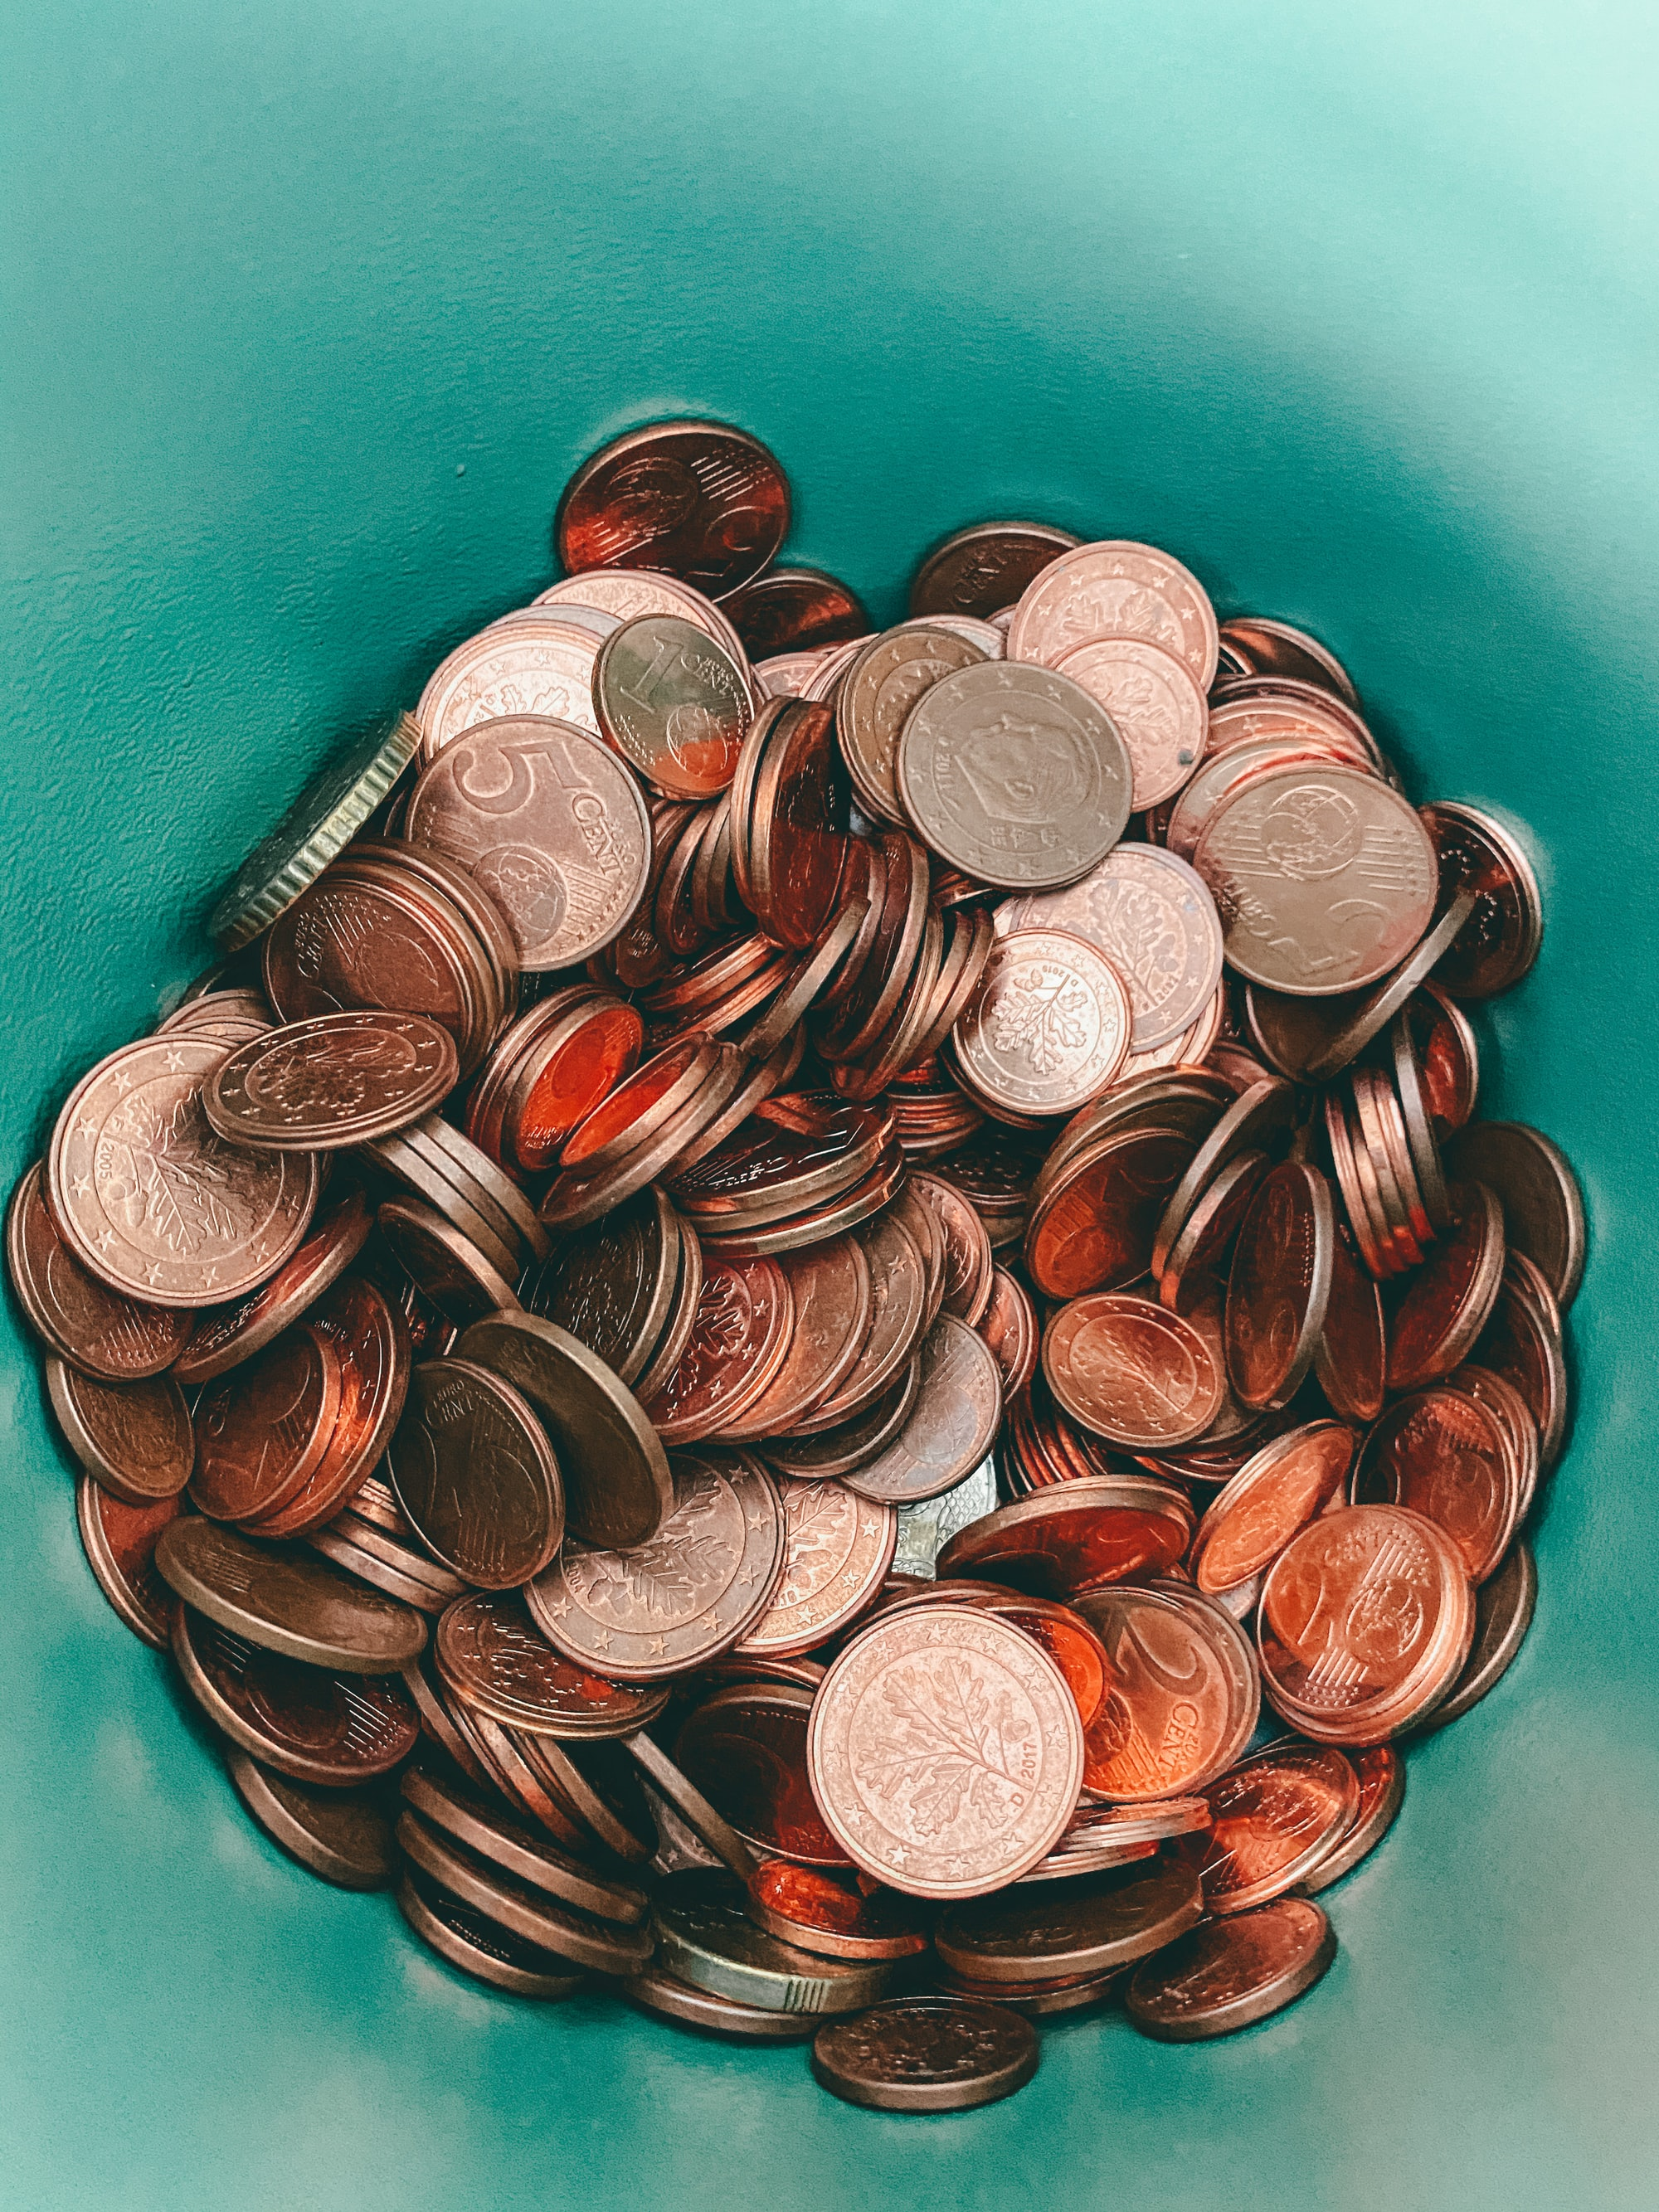 Misconceptions about Money